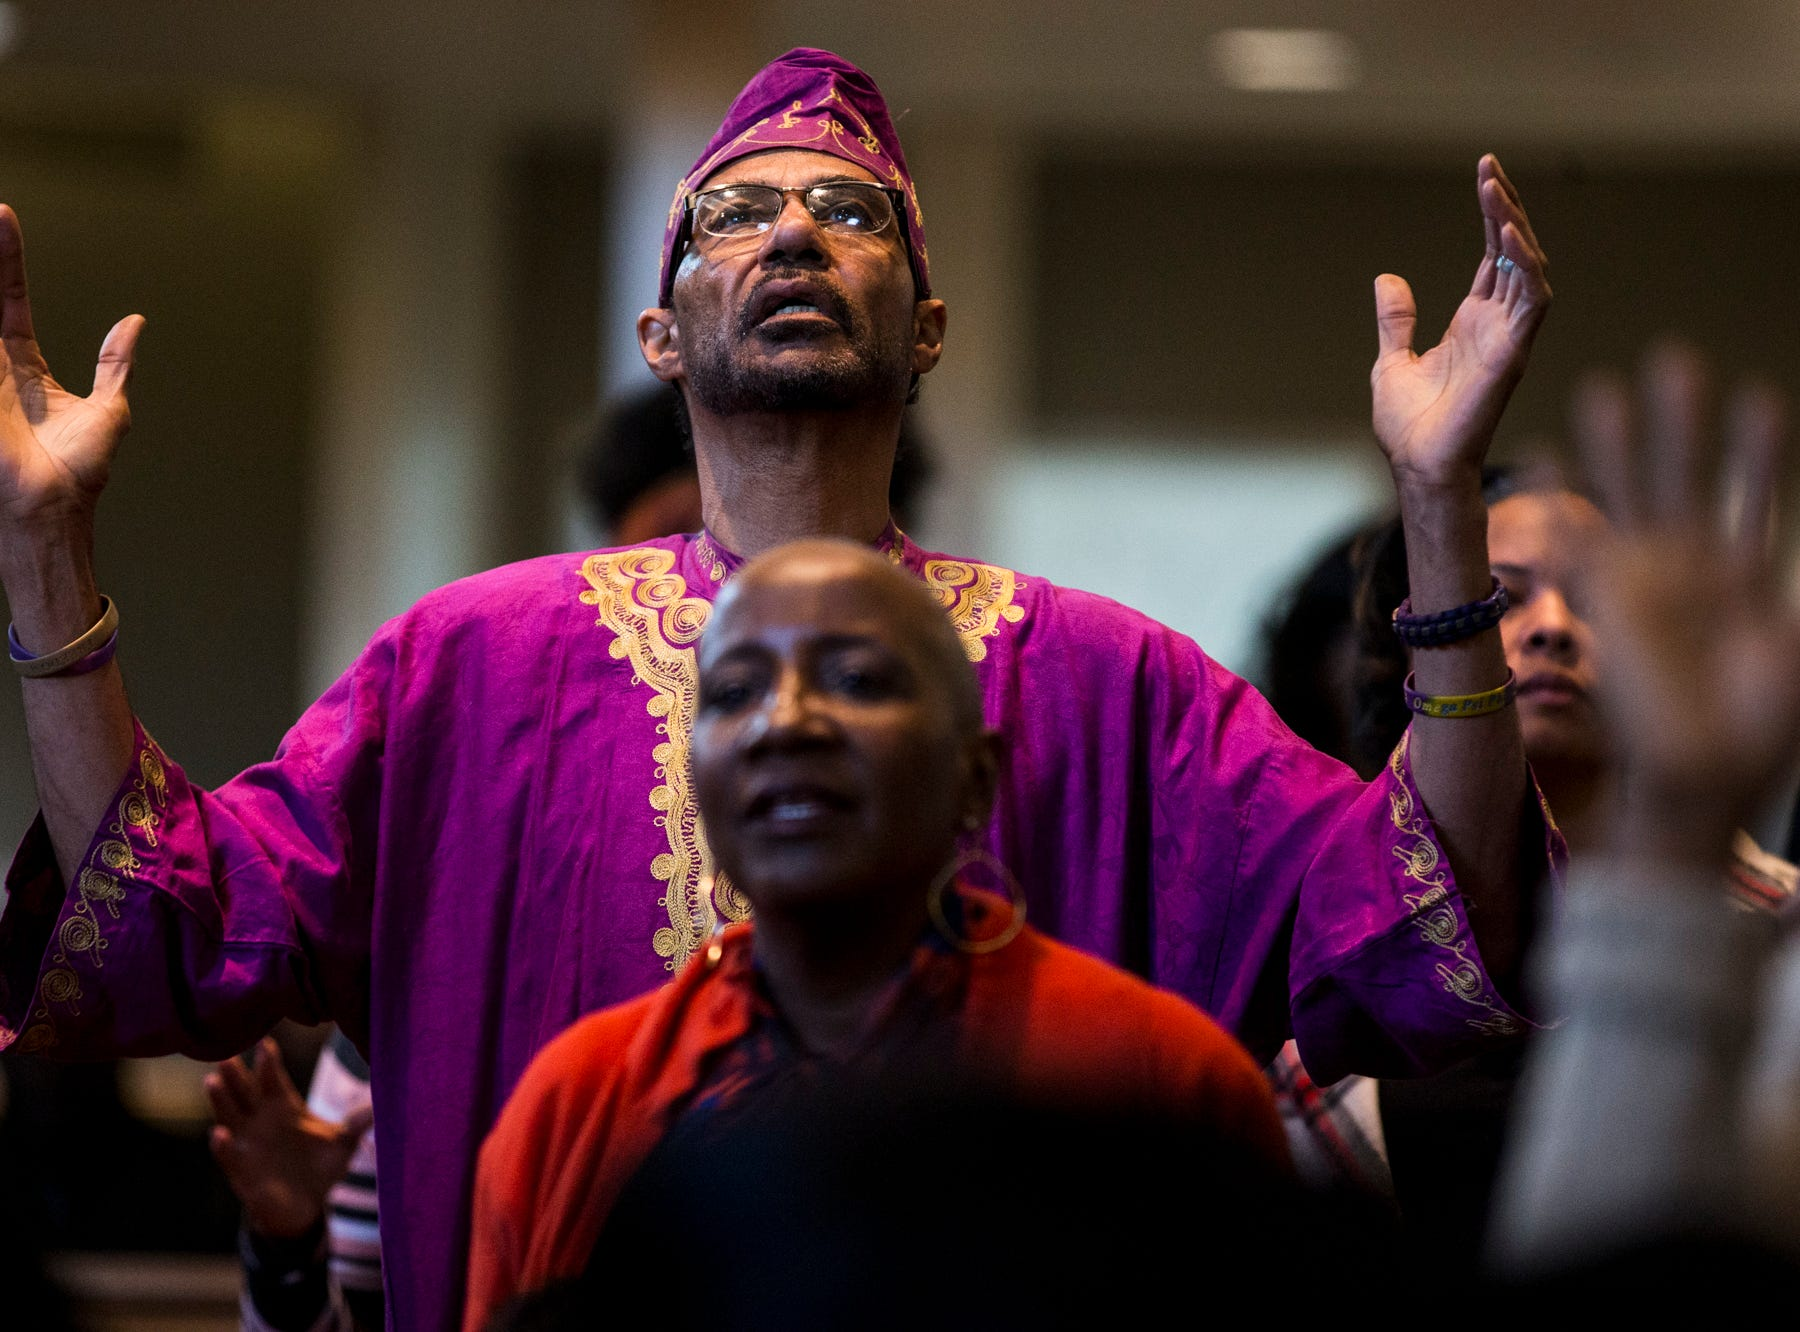 A congregant raises his arms during the 7:30 a.m. service on Feb. 24, 2019, at Pilgrim Rest Baptist Church in Phoenix. Pastor Terry Mackey was appointed to replace the late Bishop Alexis Thomas.